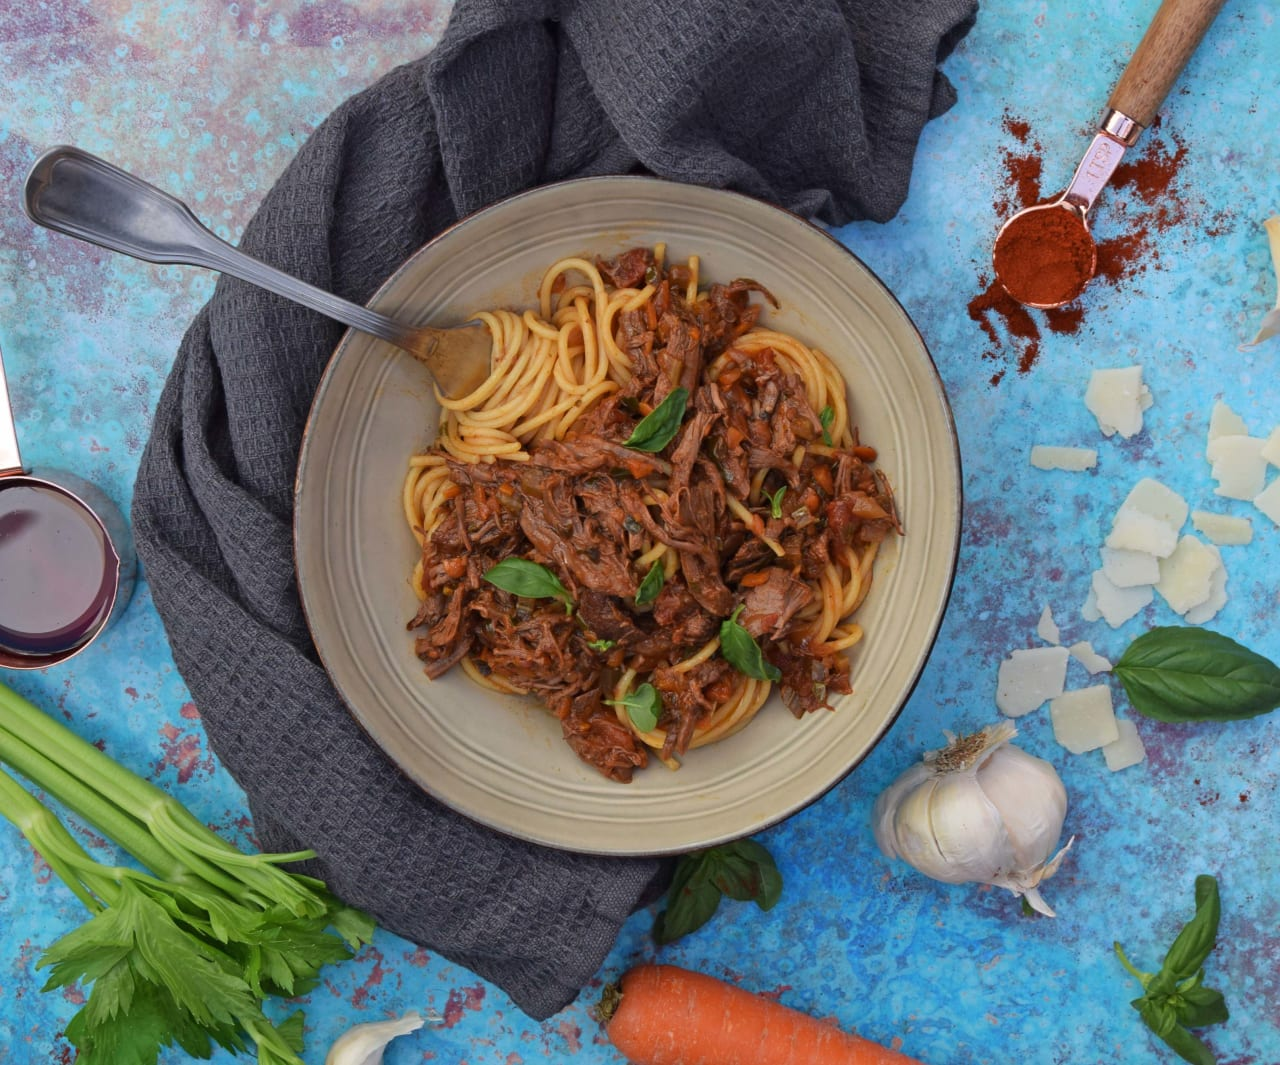 SLOW COOKED SHREDDED BEEF BOLOGNESE